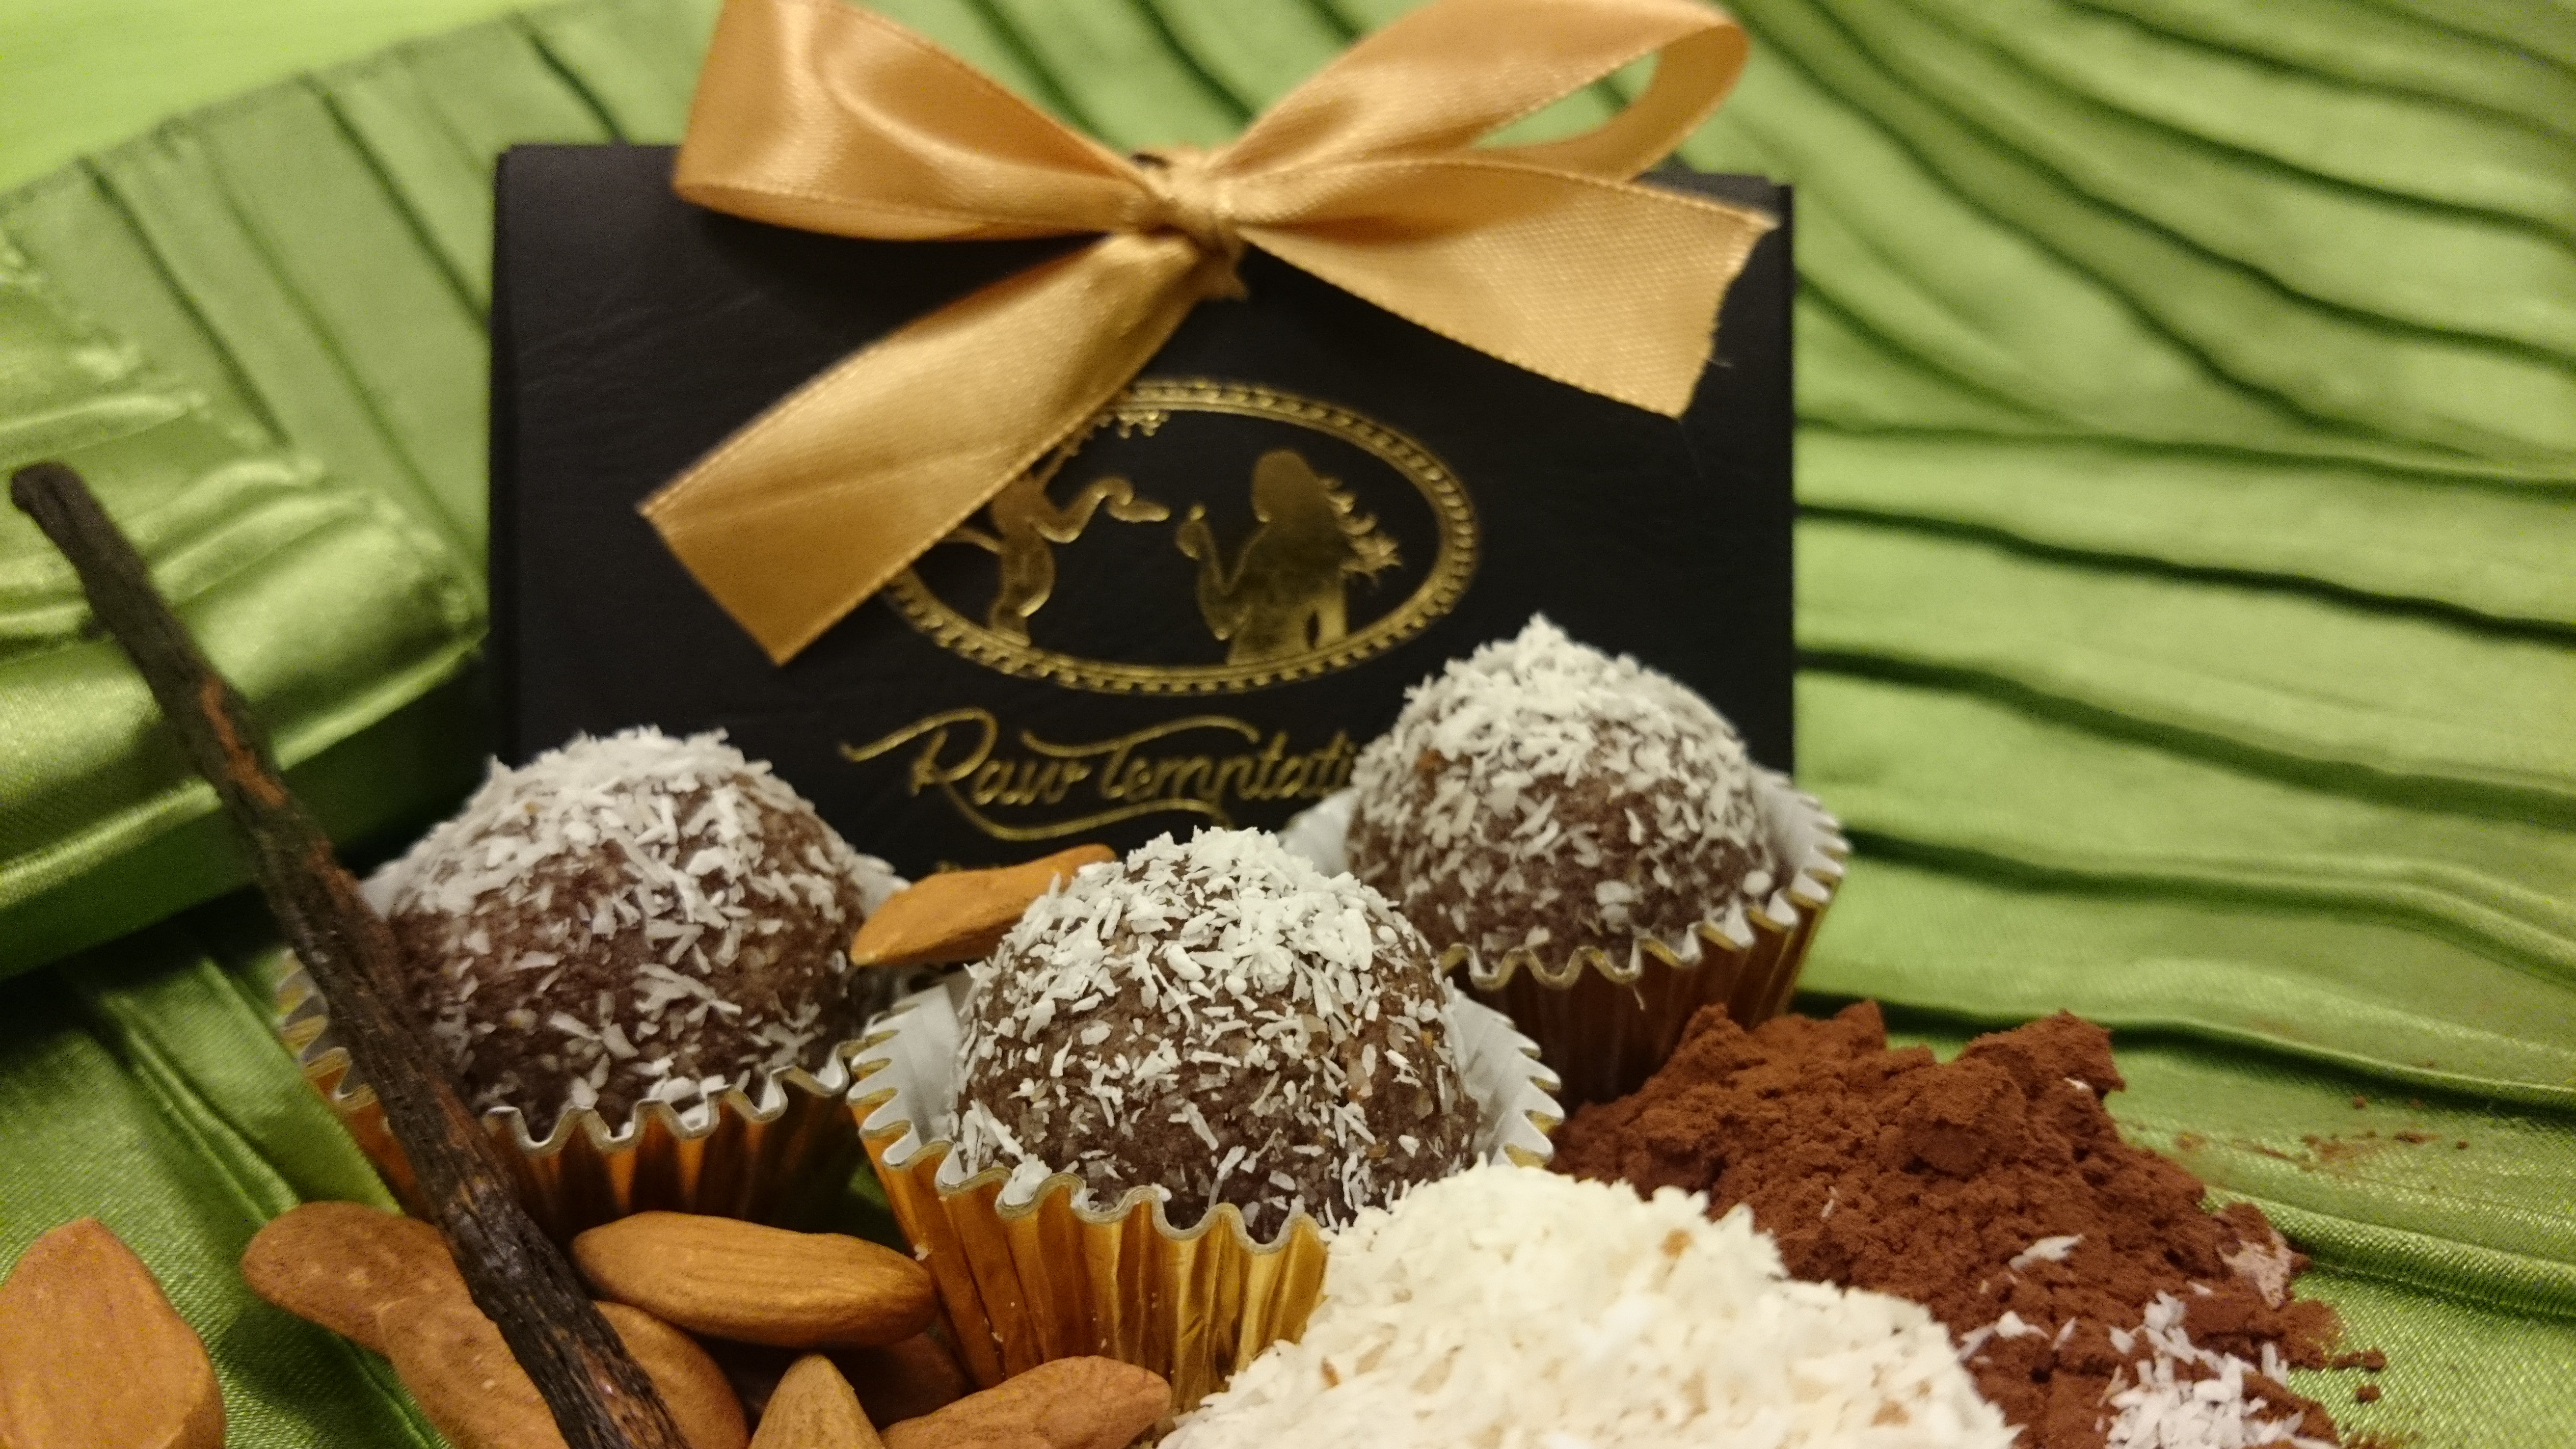 Raw Temptation Truffles